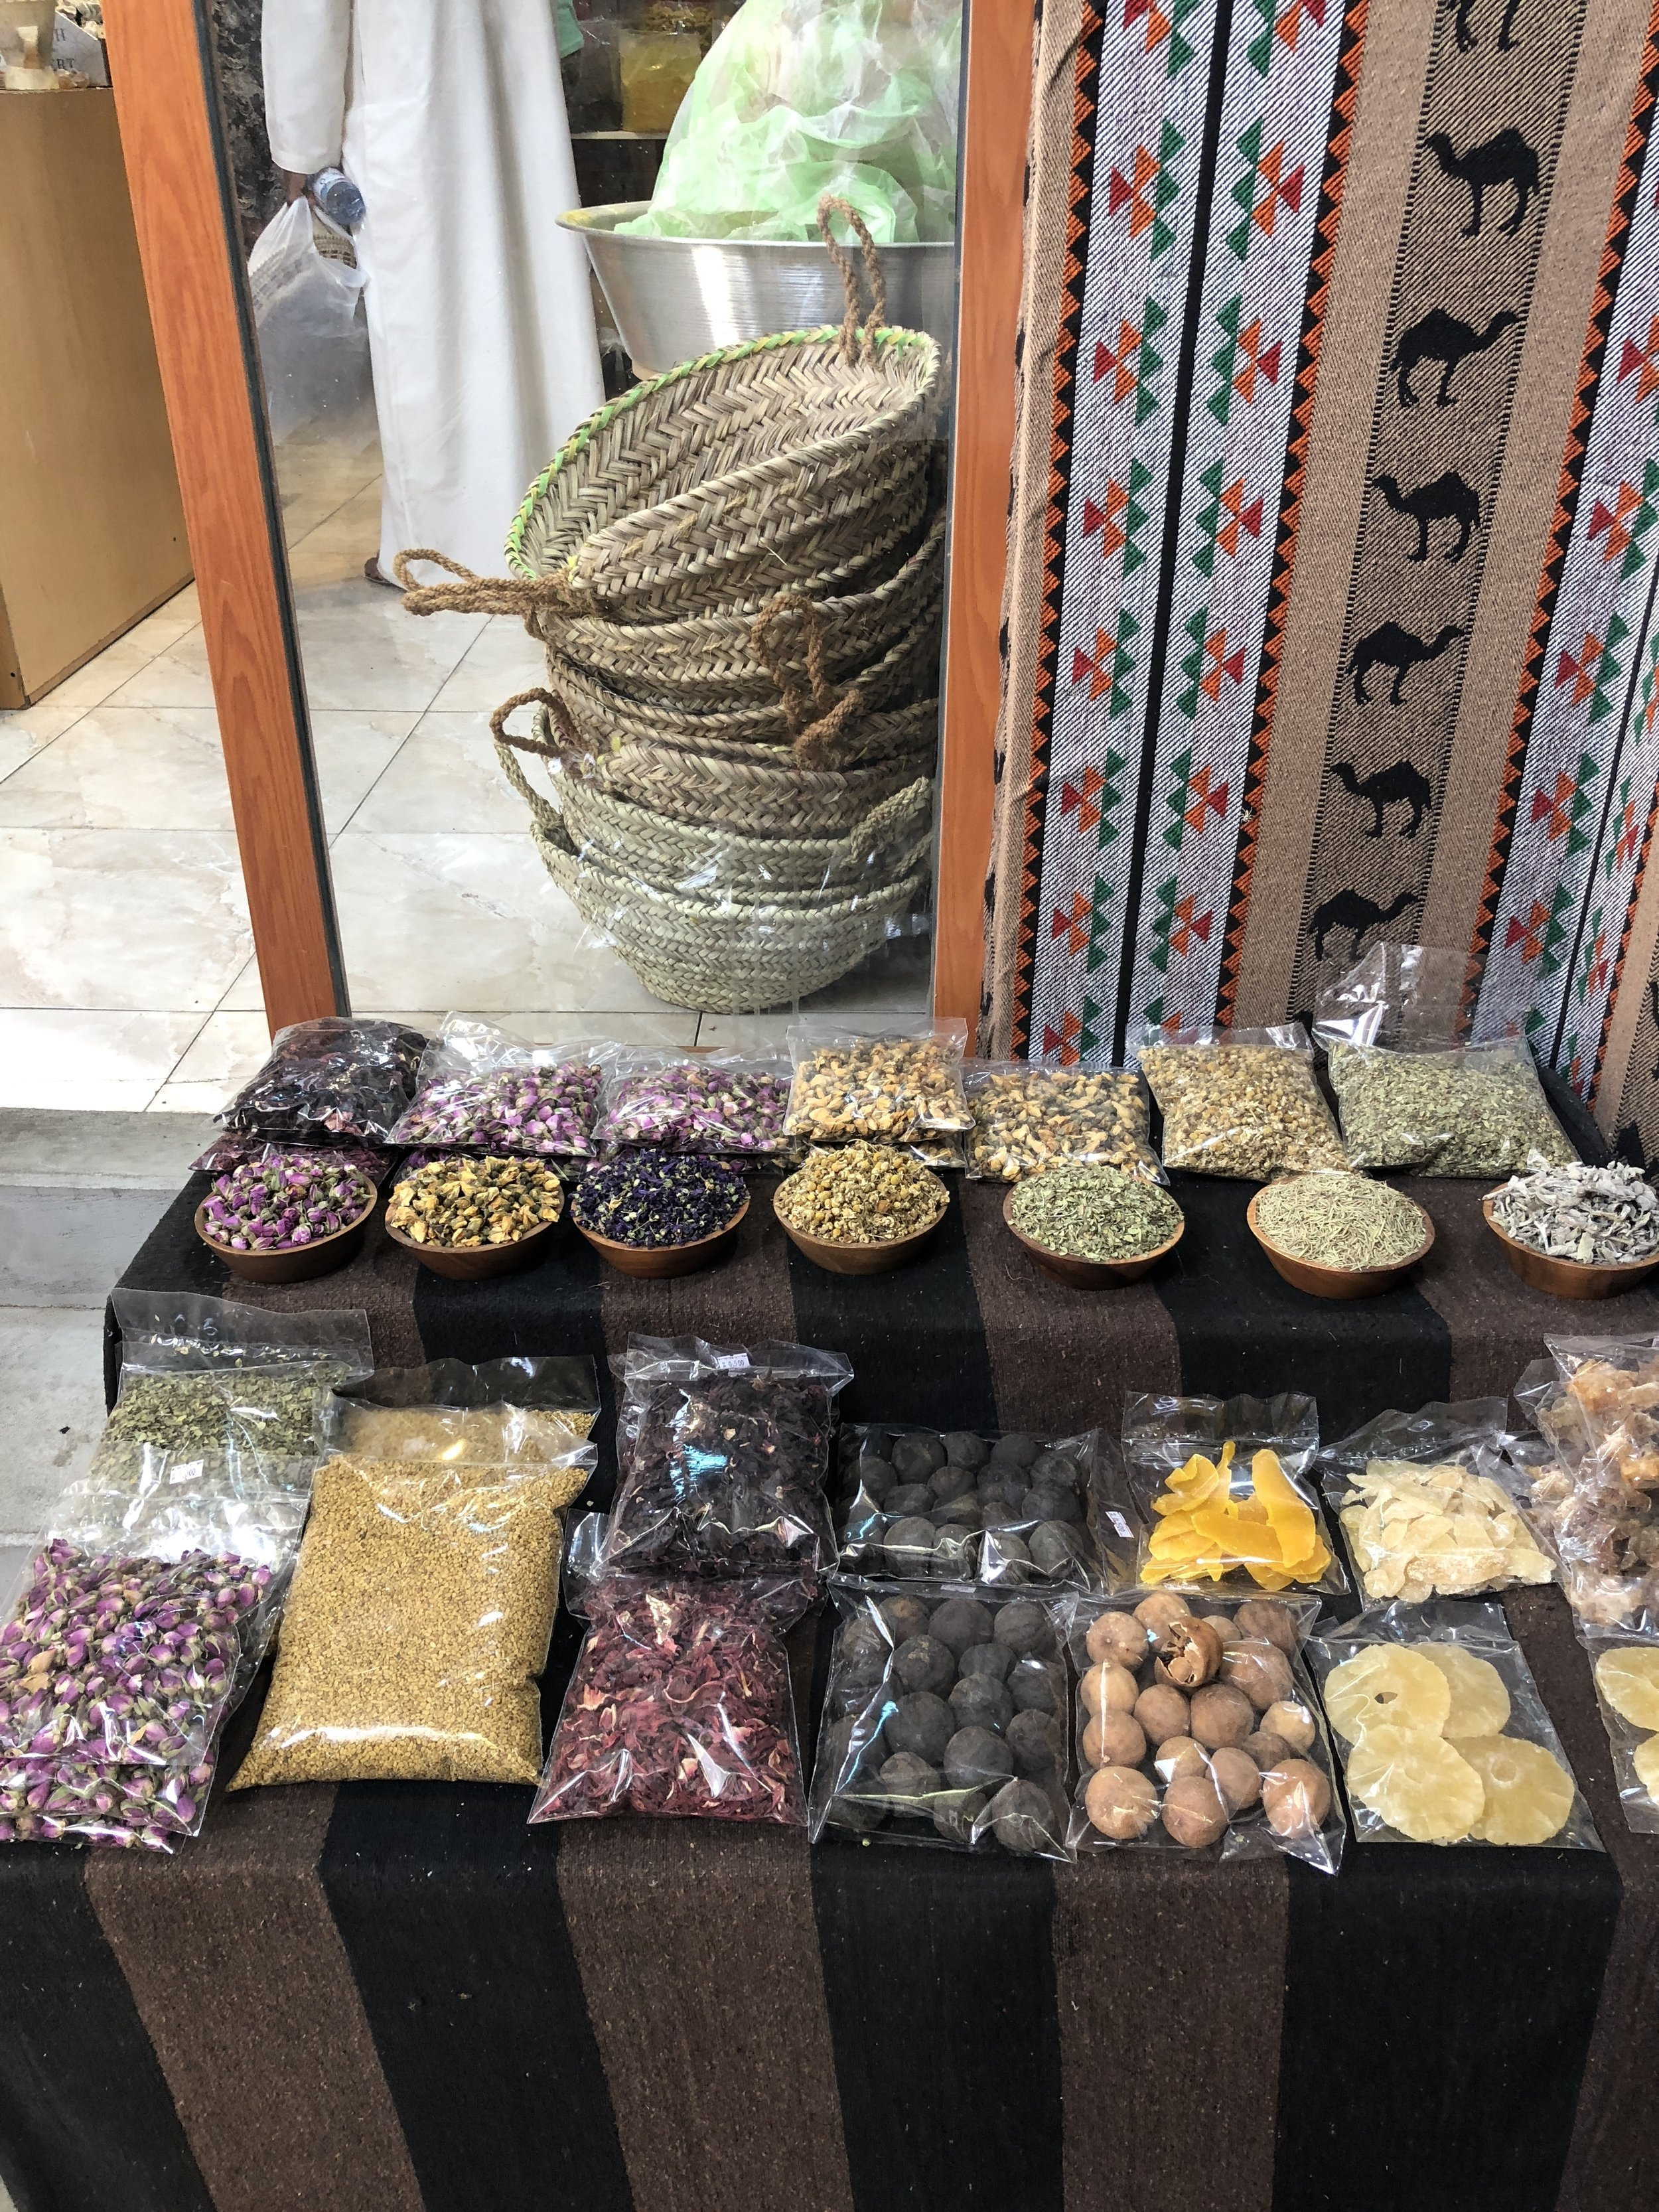 A selection of just about every dried spice and fruit you can think of